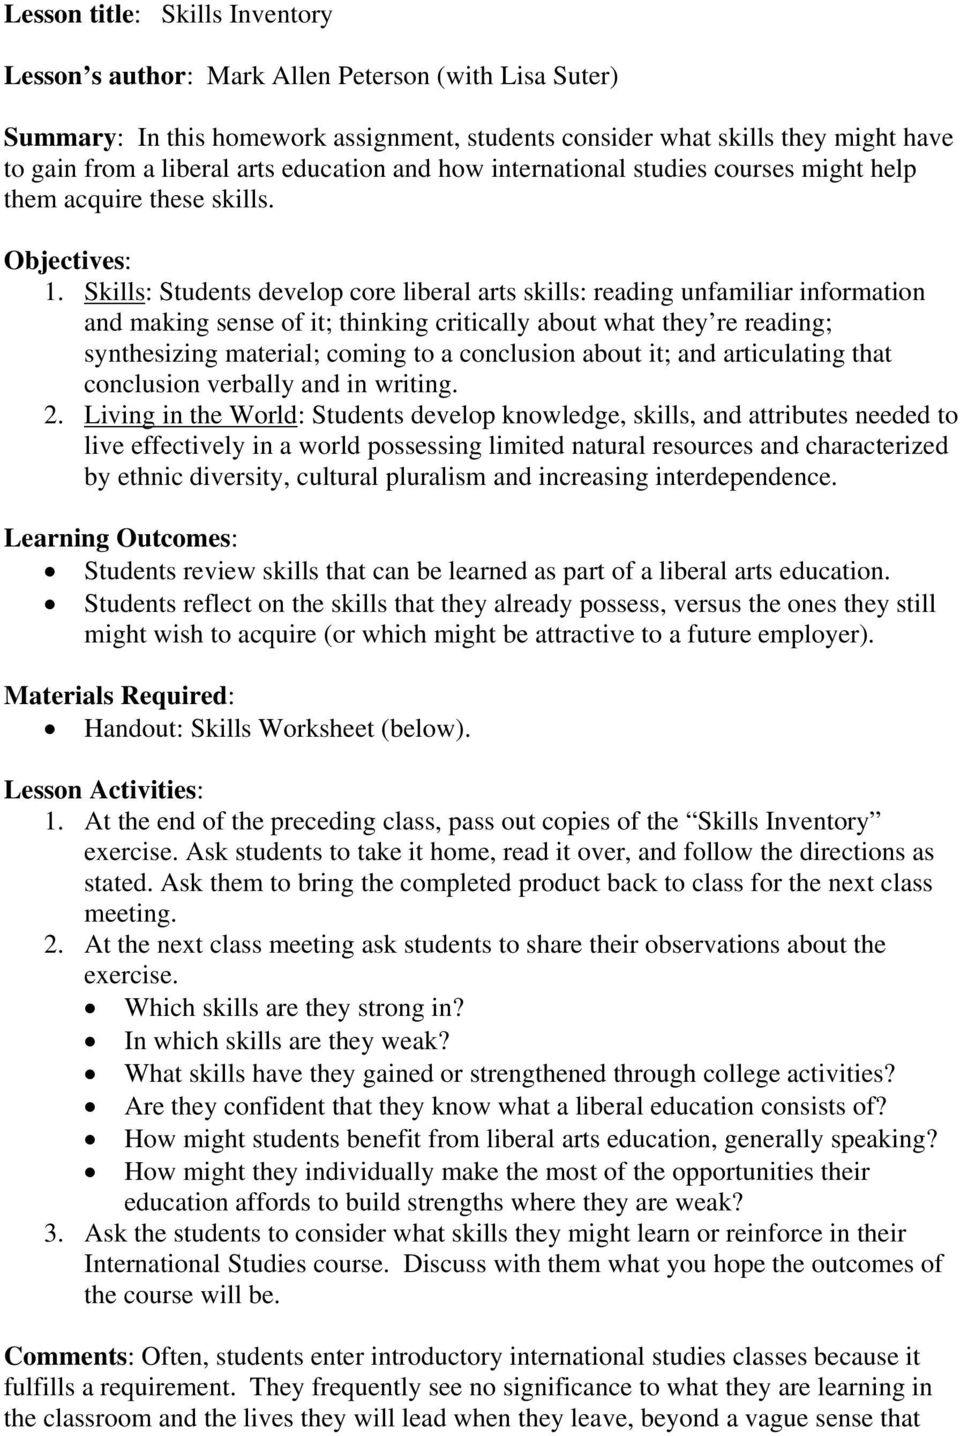 Skills: Students develop core liberal arts skills: reading unfamiliar information and making sense of it; thinking critically about what they re reading; synthesizing material; coming to a conclusion